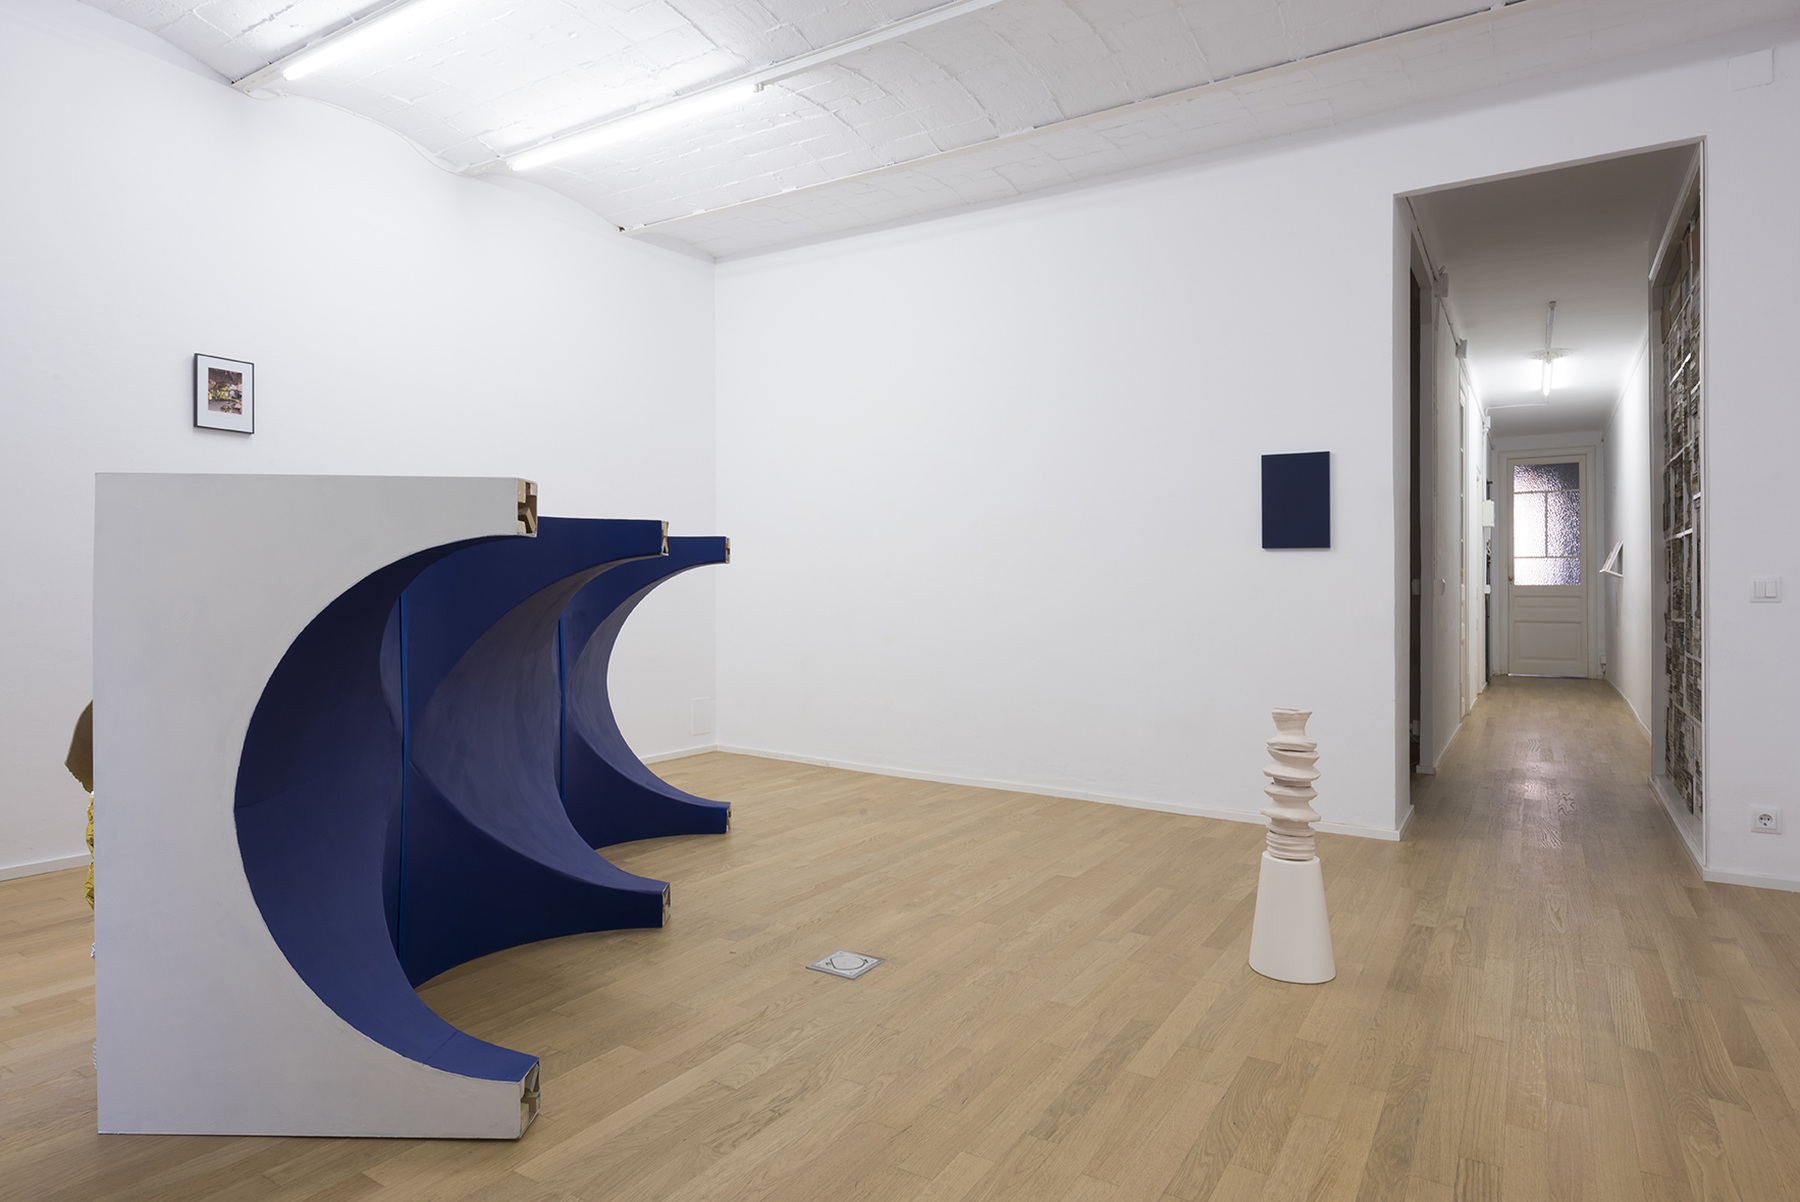 2 - installation view